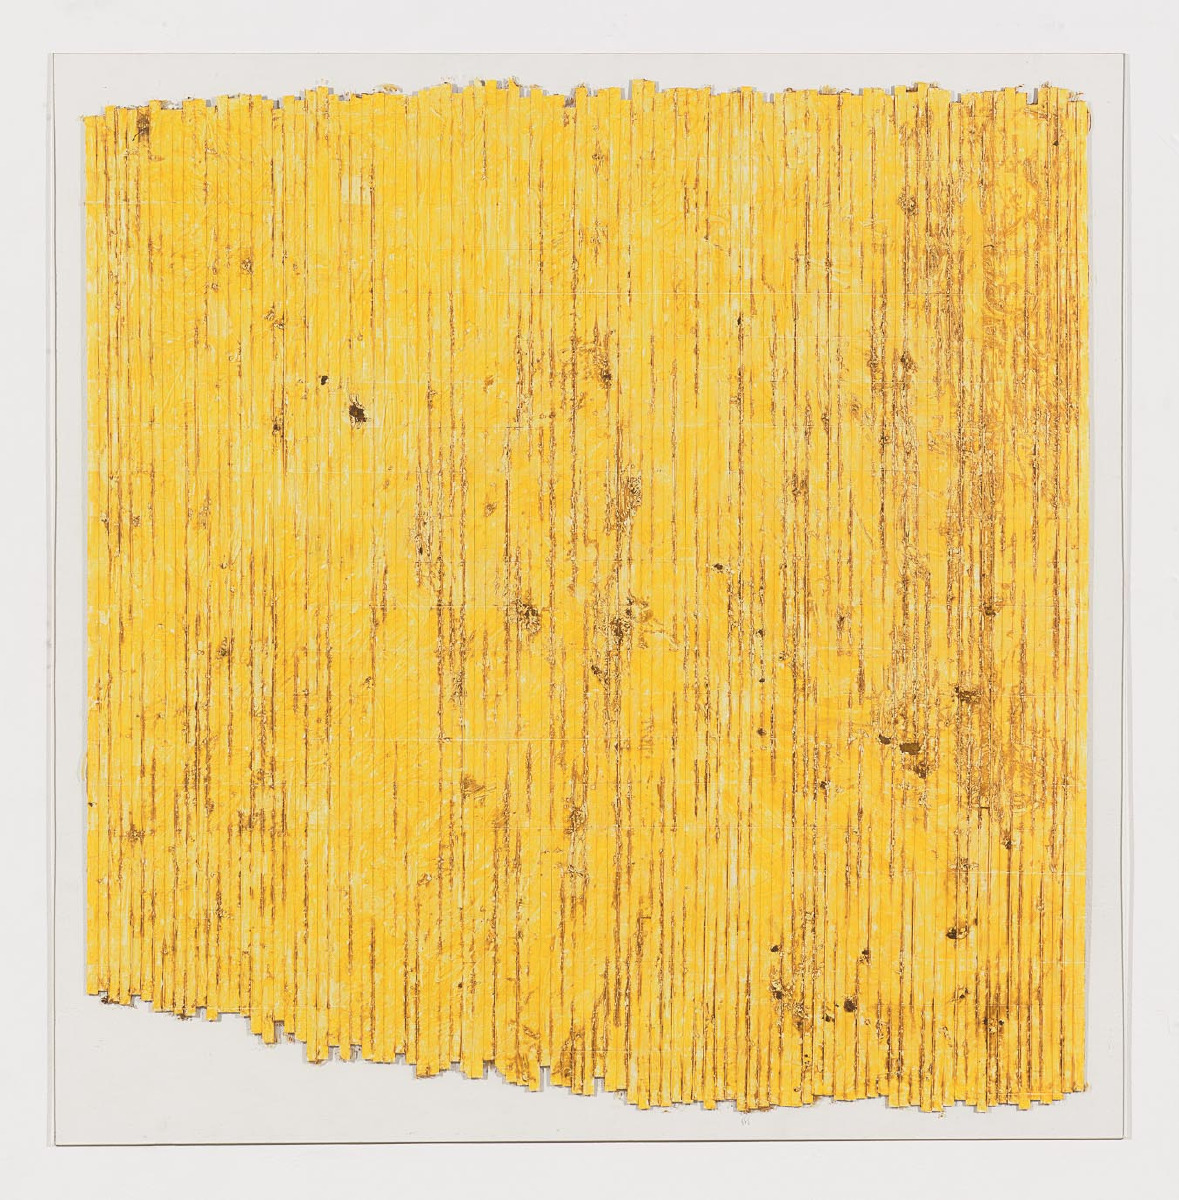 Merrill Wagner, Untitled 2 of 2, 1978, 49 x 48 inches, pastel and tape on Plexiglass (courtesy of Zürcher Gallery)